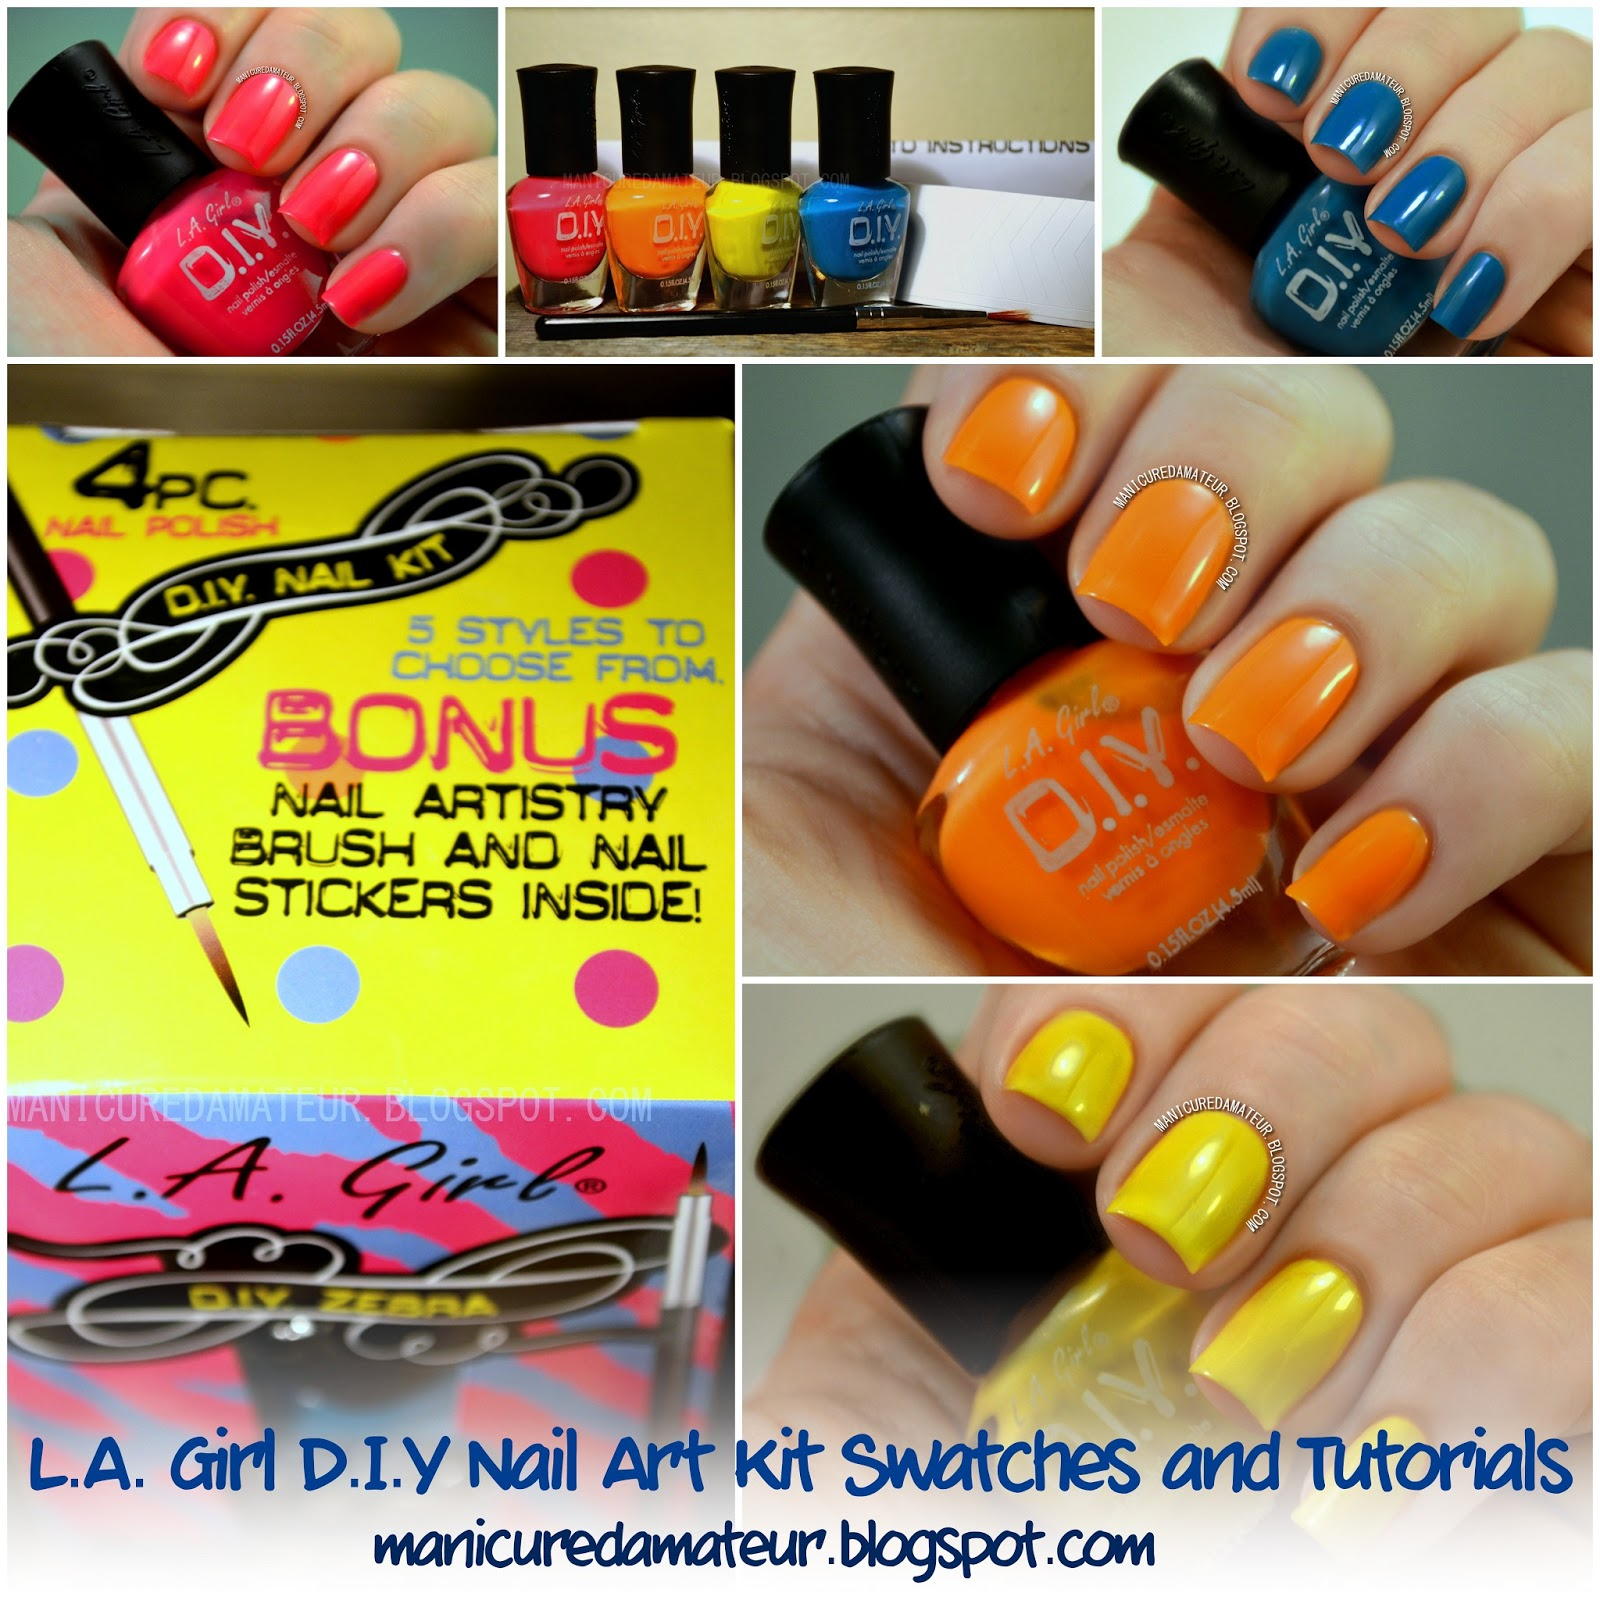 Amazing Shine Nail Art Kit Review: The Manicured Amateur: L.A. Girl 4 Piece Nail Polish DIY